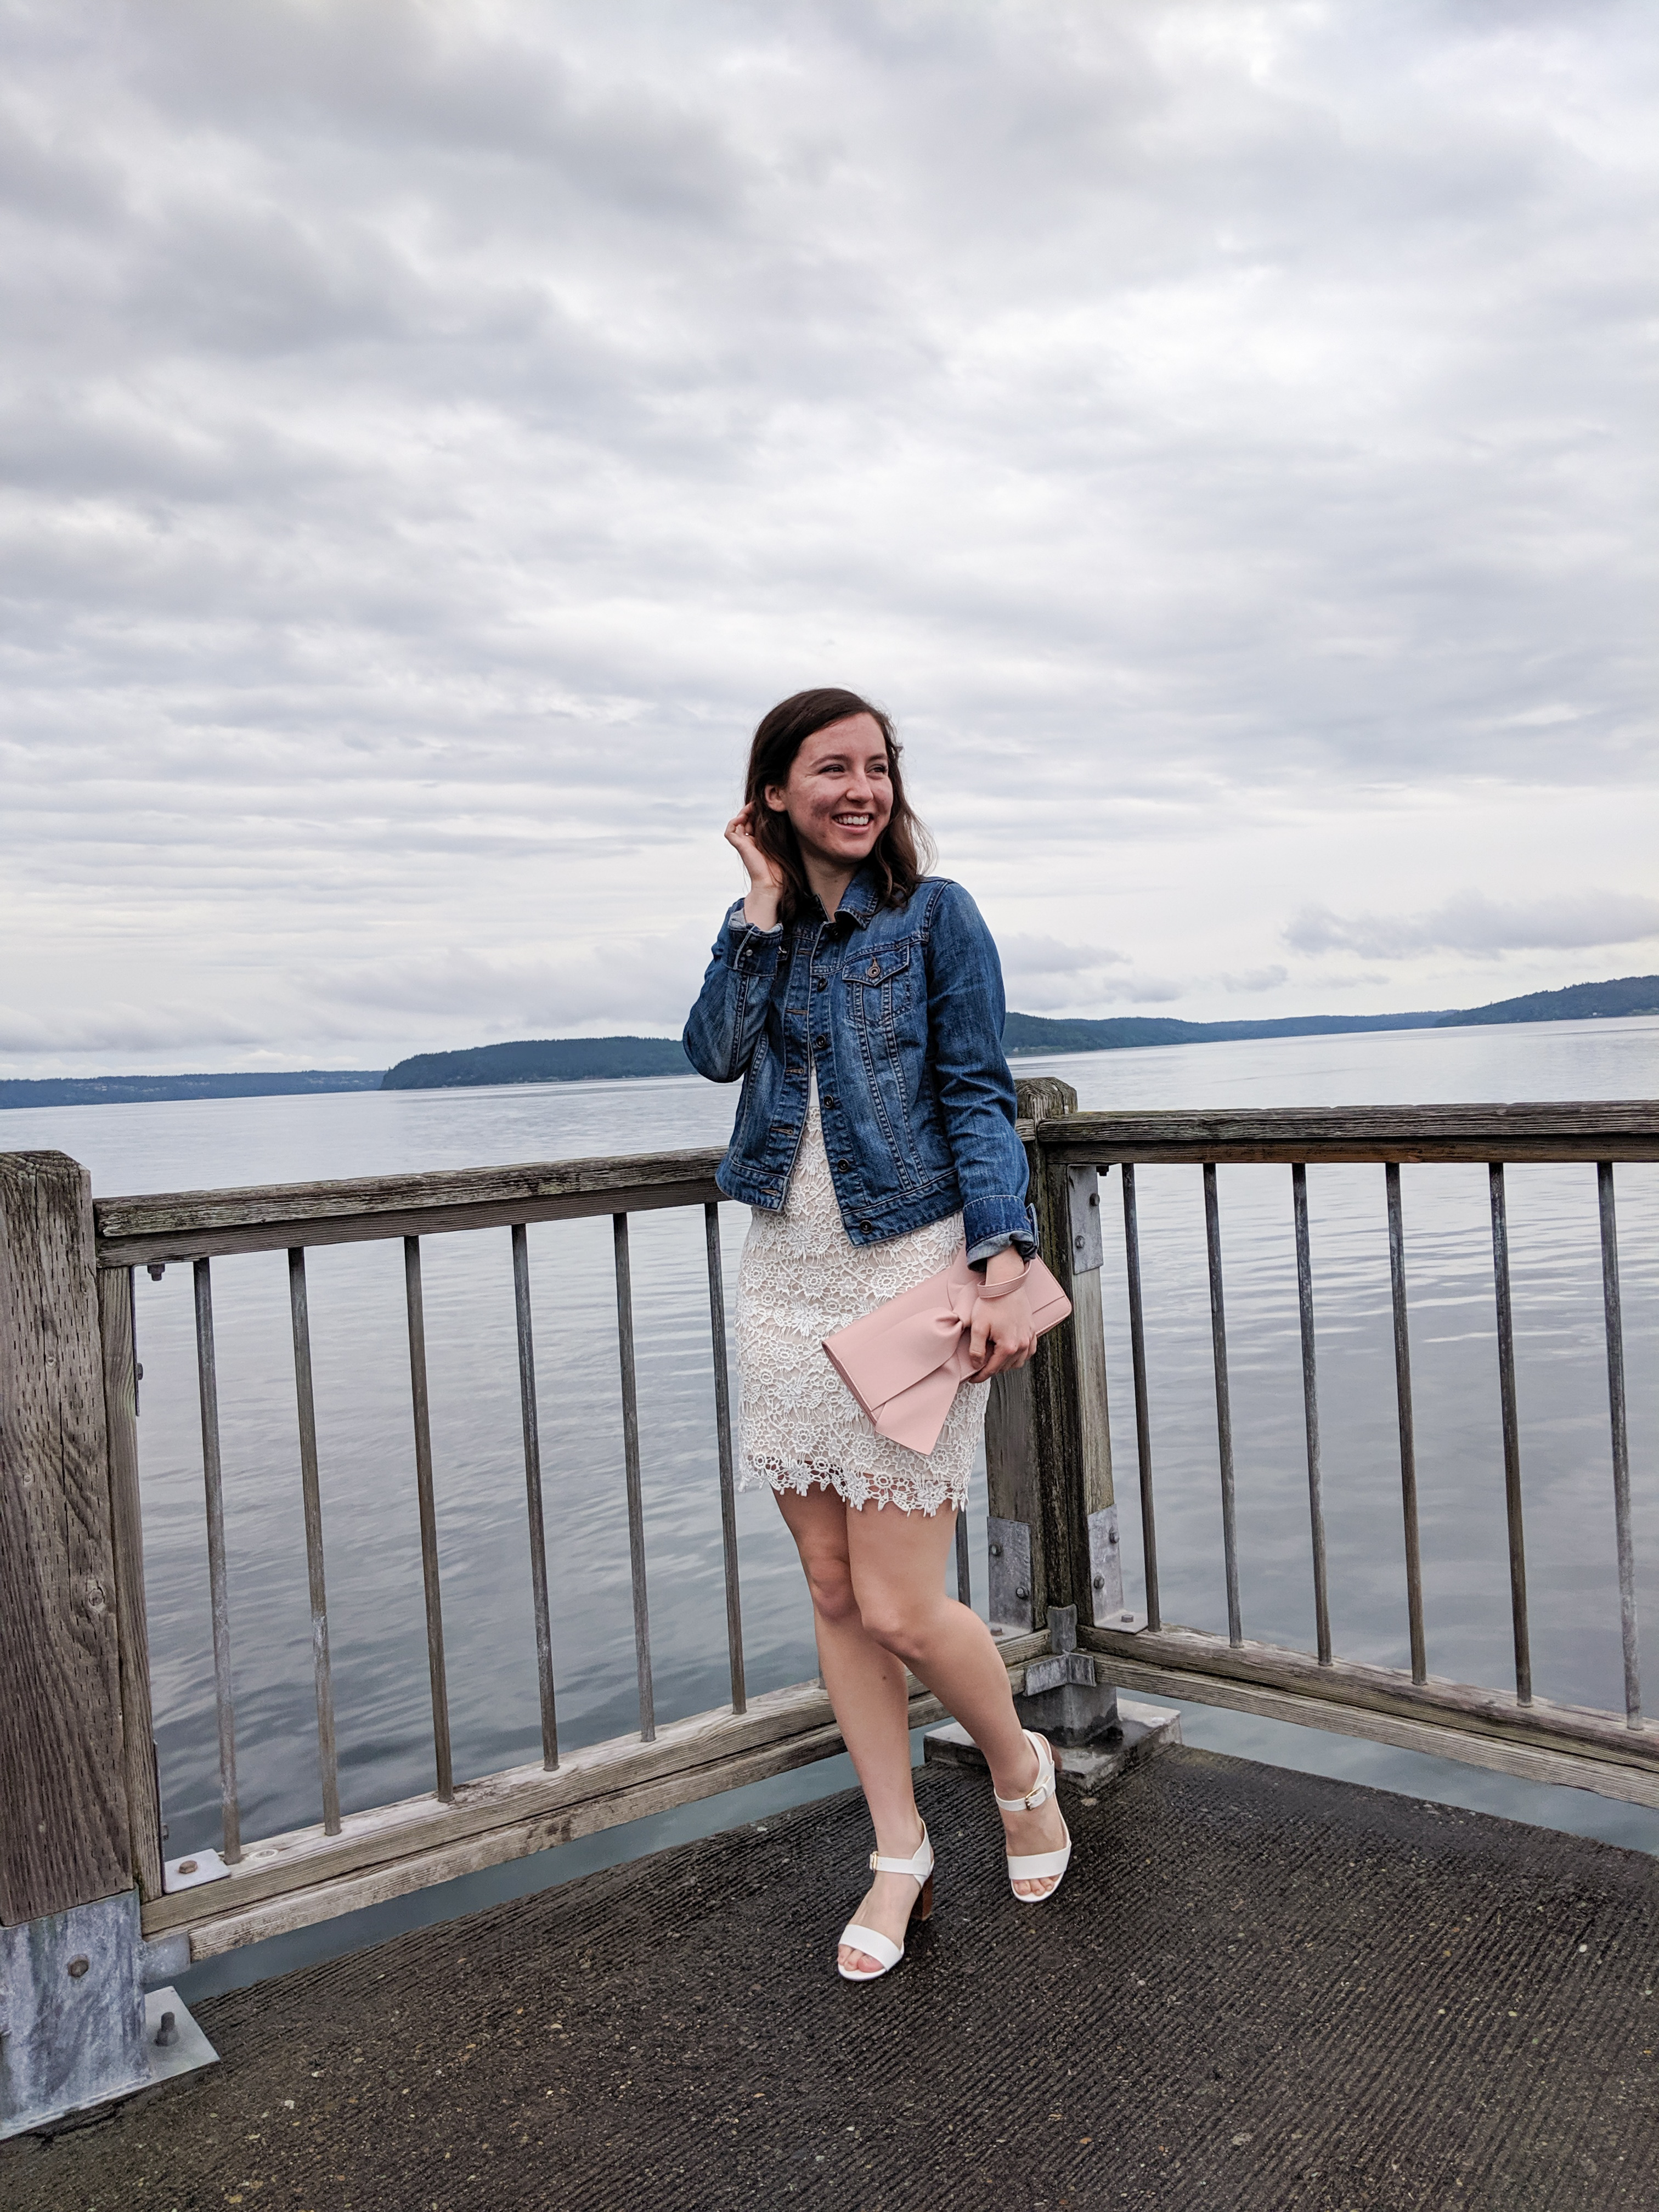 Puget Sound, fancy outfit, graduation outfit